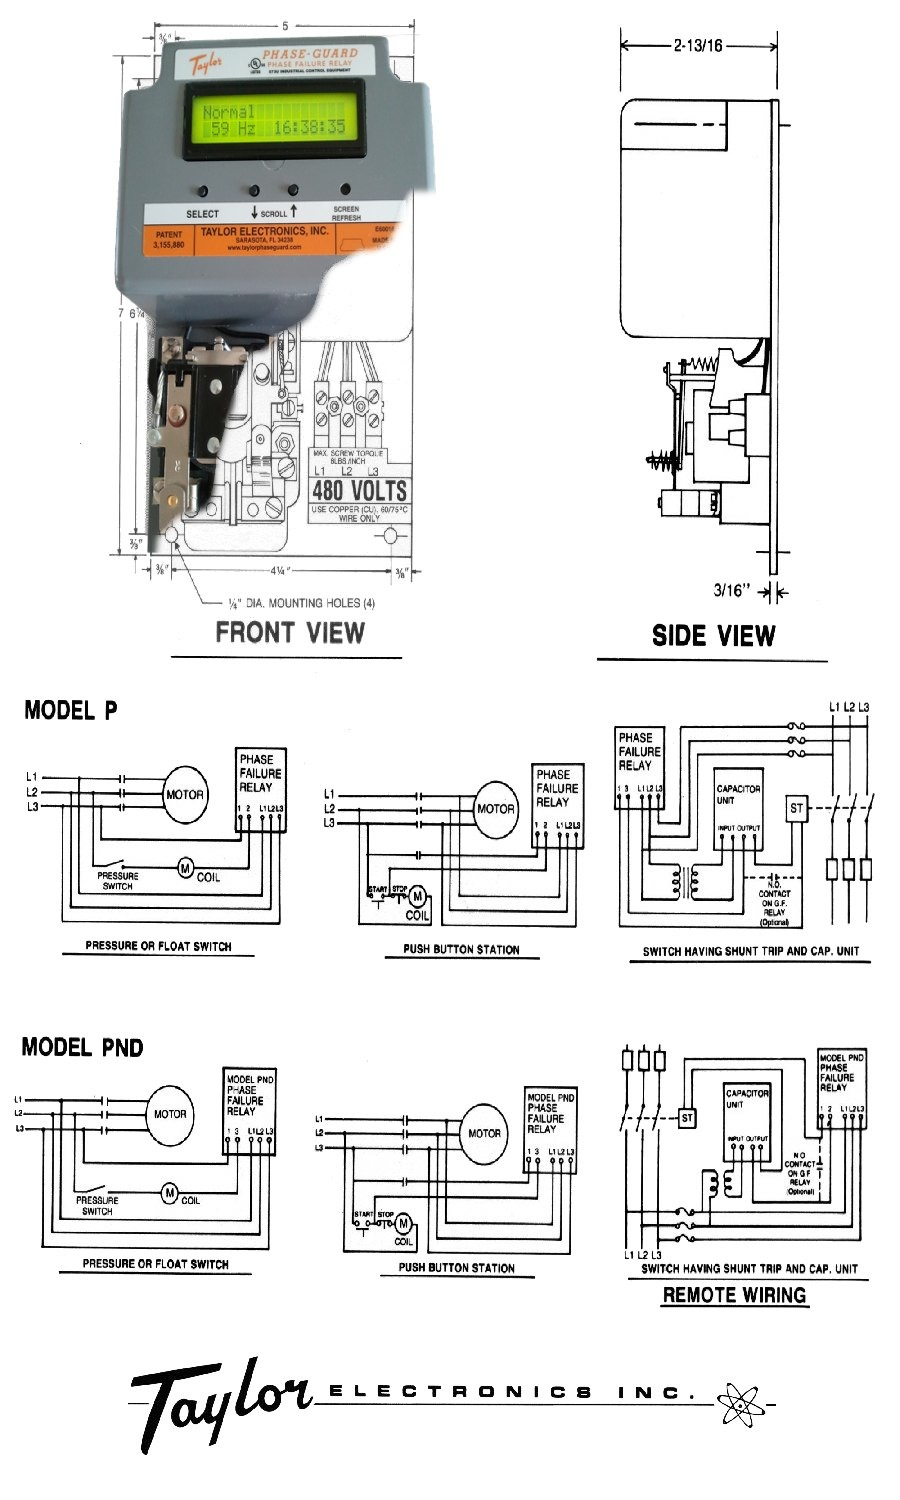 wiring diagram wiring diagram taylor electronics, inc taylor dunn wiring diagram at edmiracle.co